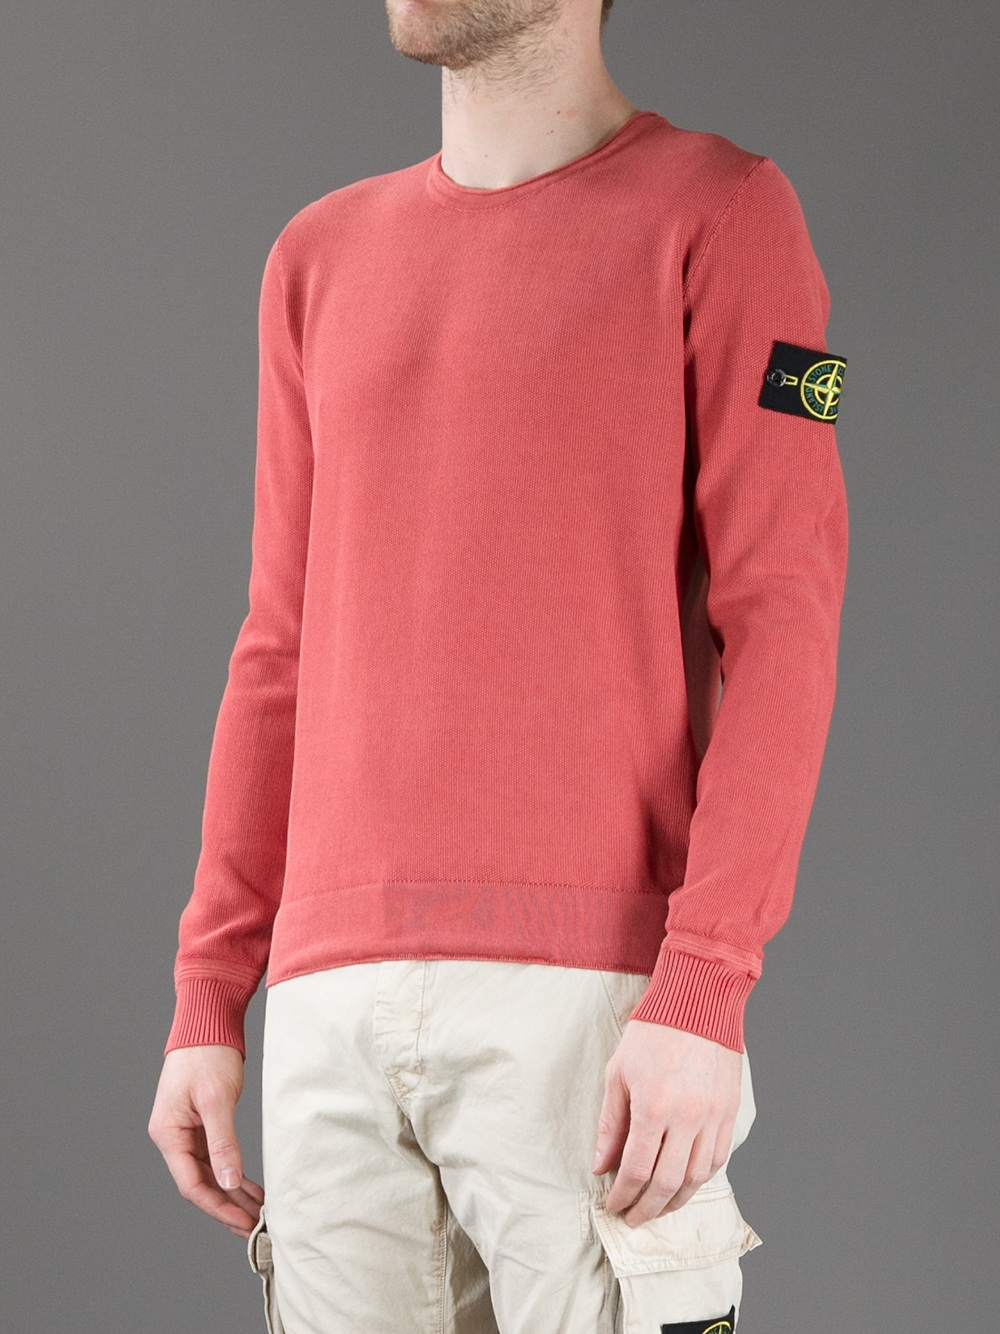 Stone island Brand Patch Sweater in Red for Men | Lyst